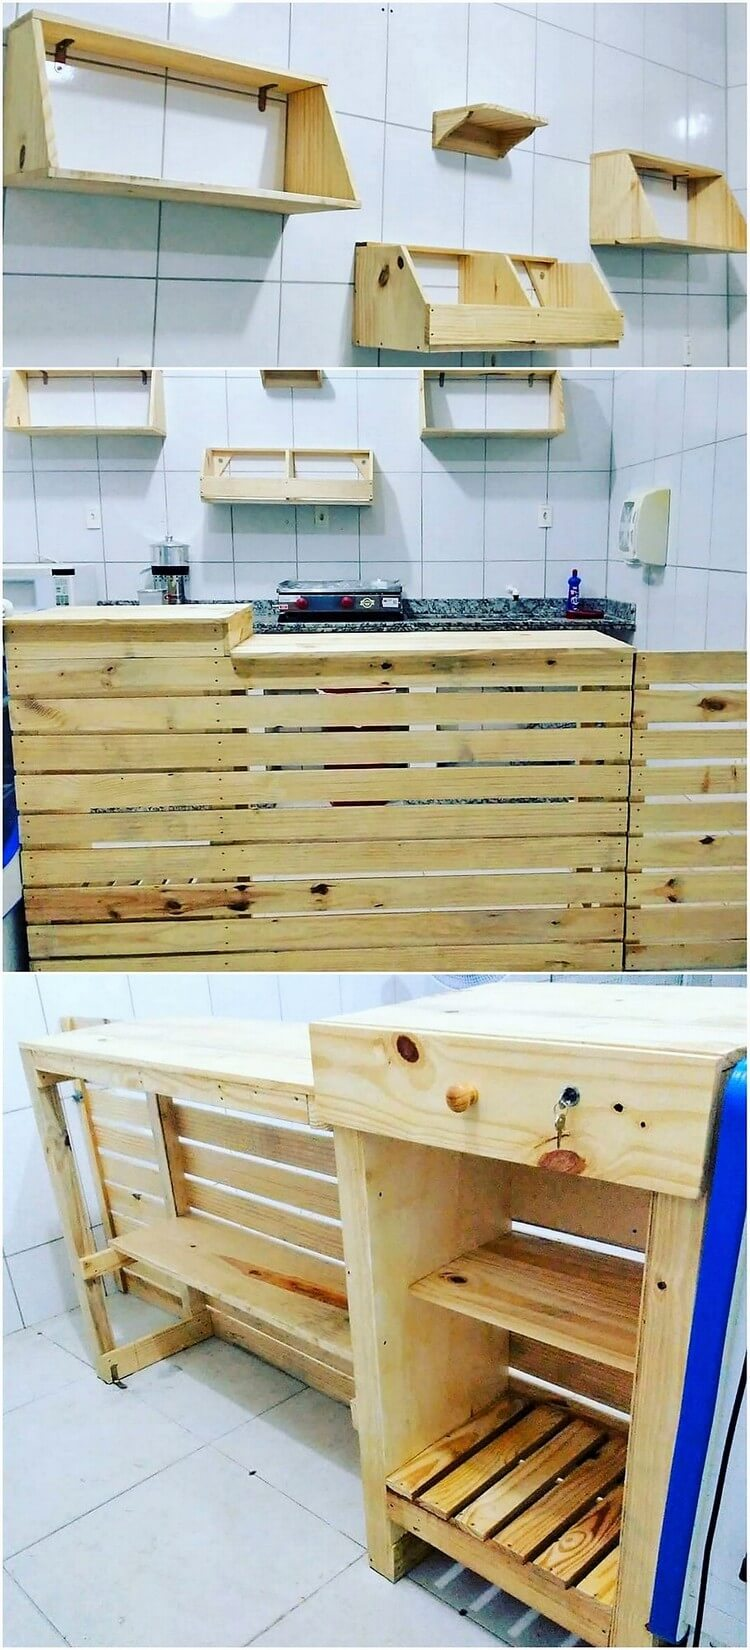 Pallet Wall Shelves and Kitchen Counter Table